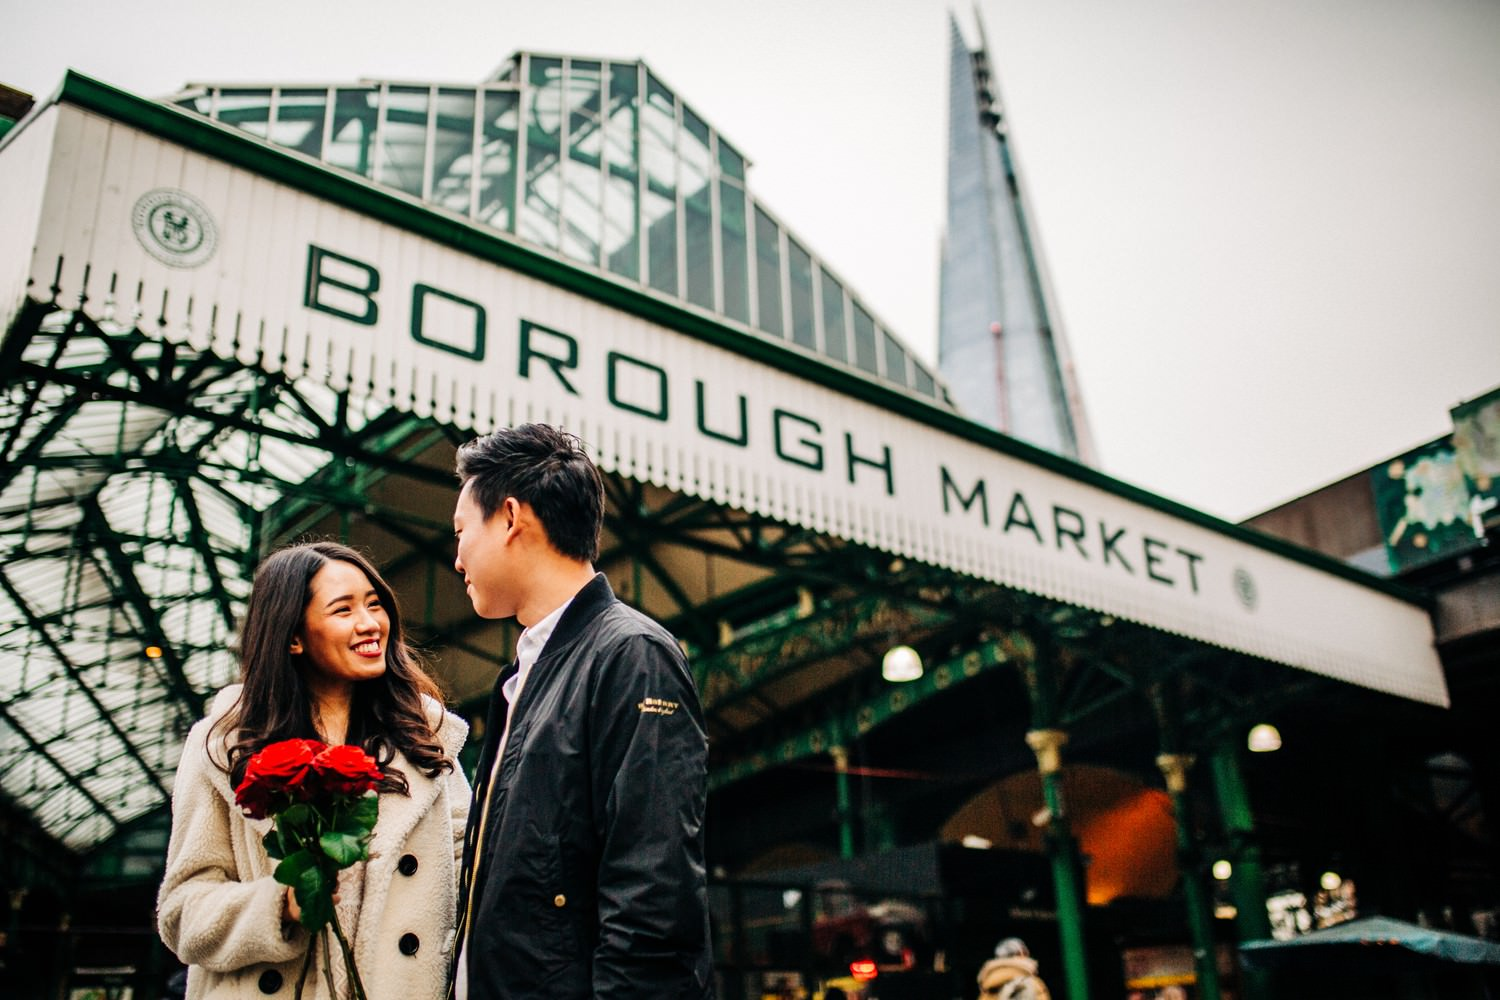 Relaxed engagement shoot at Borough Market, London